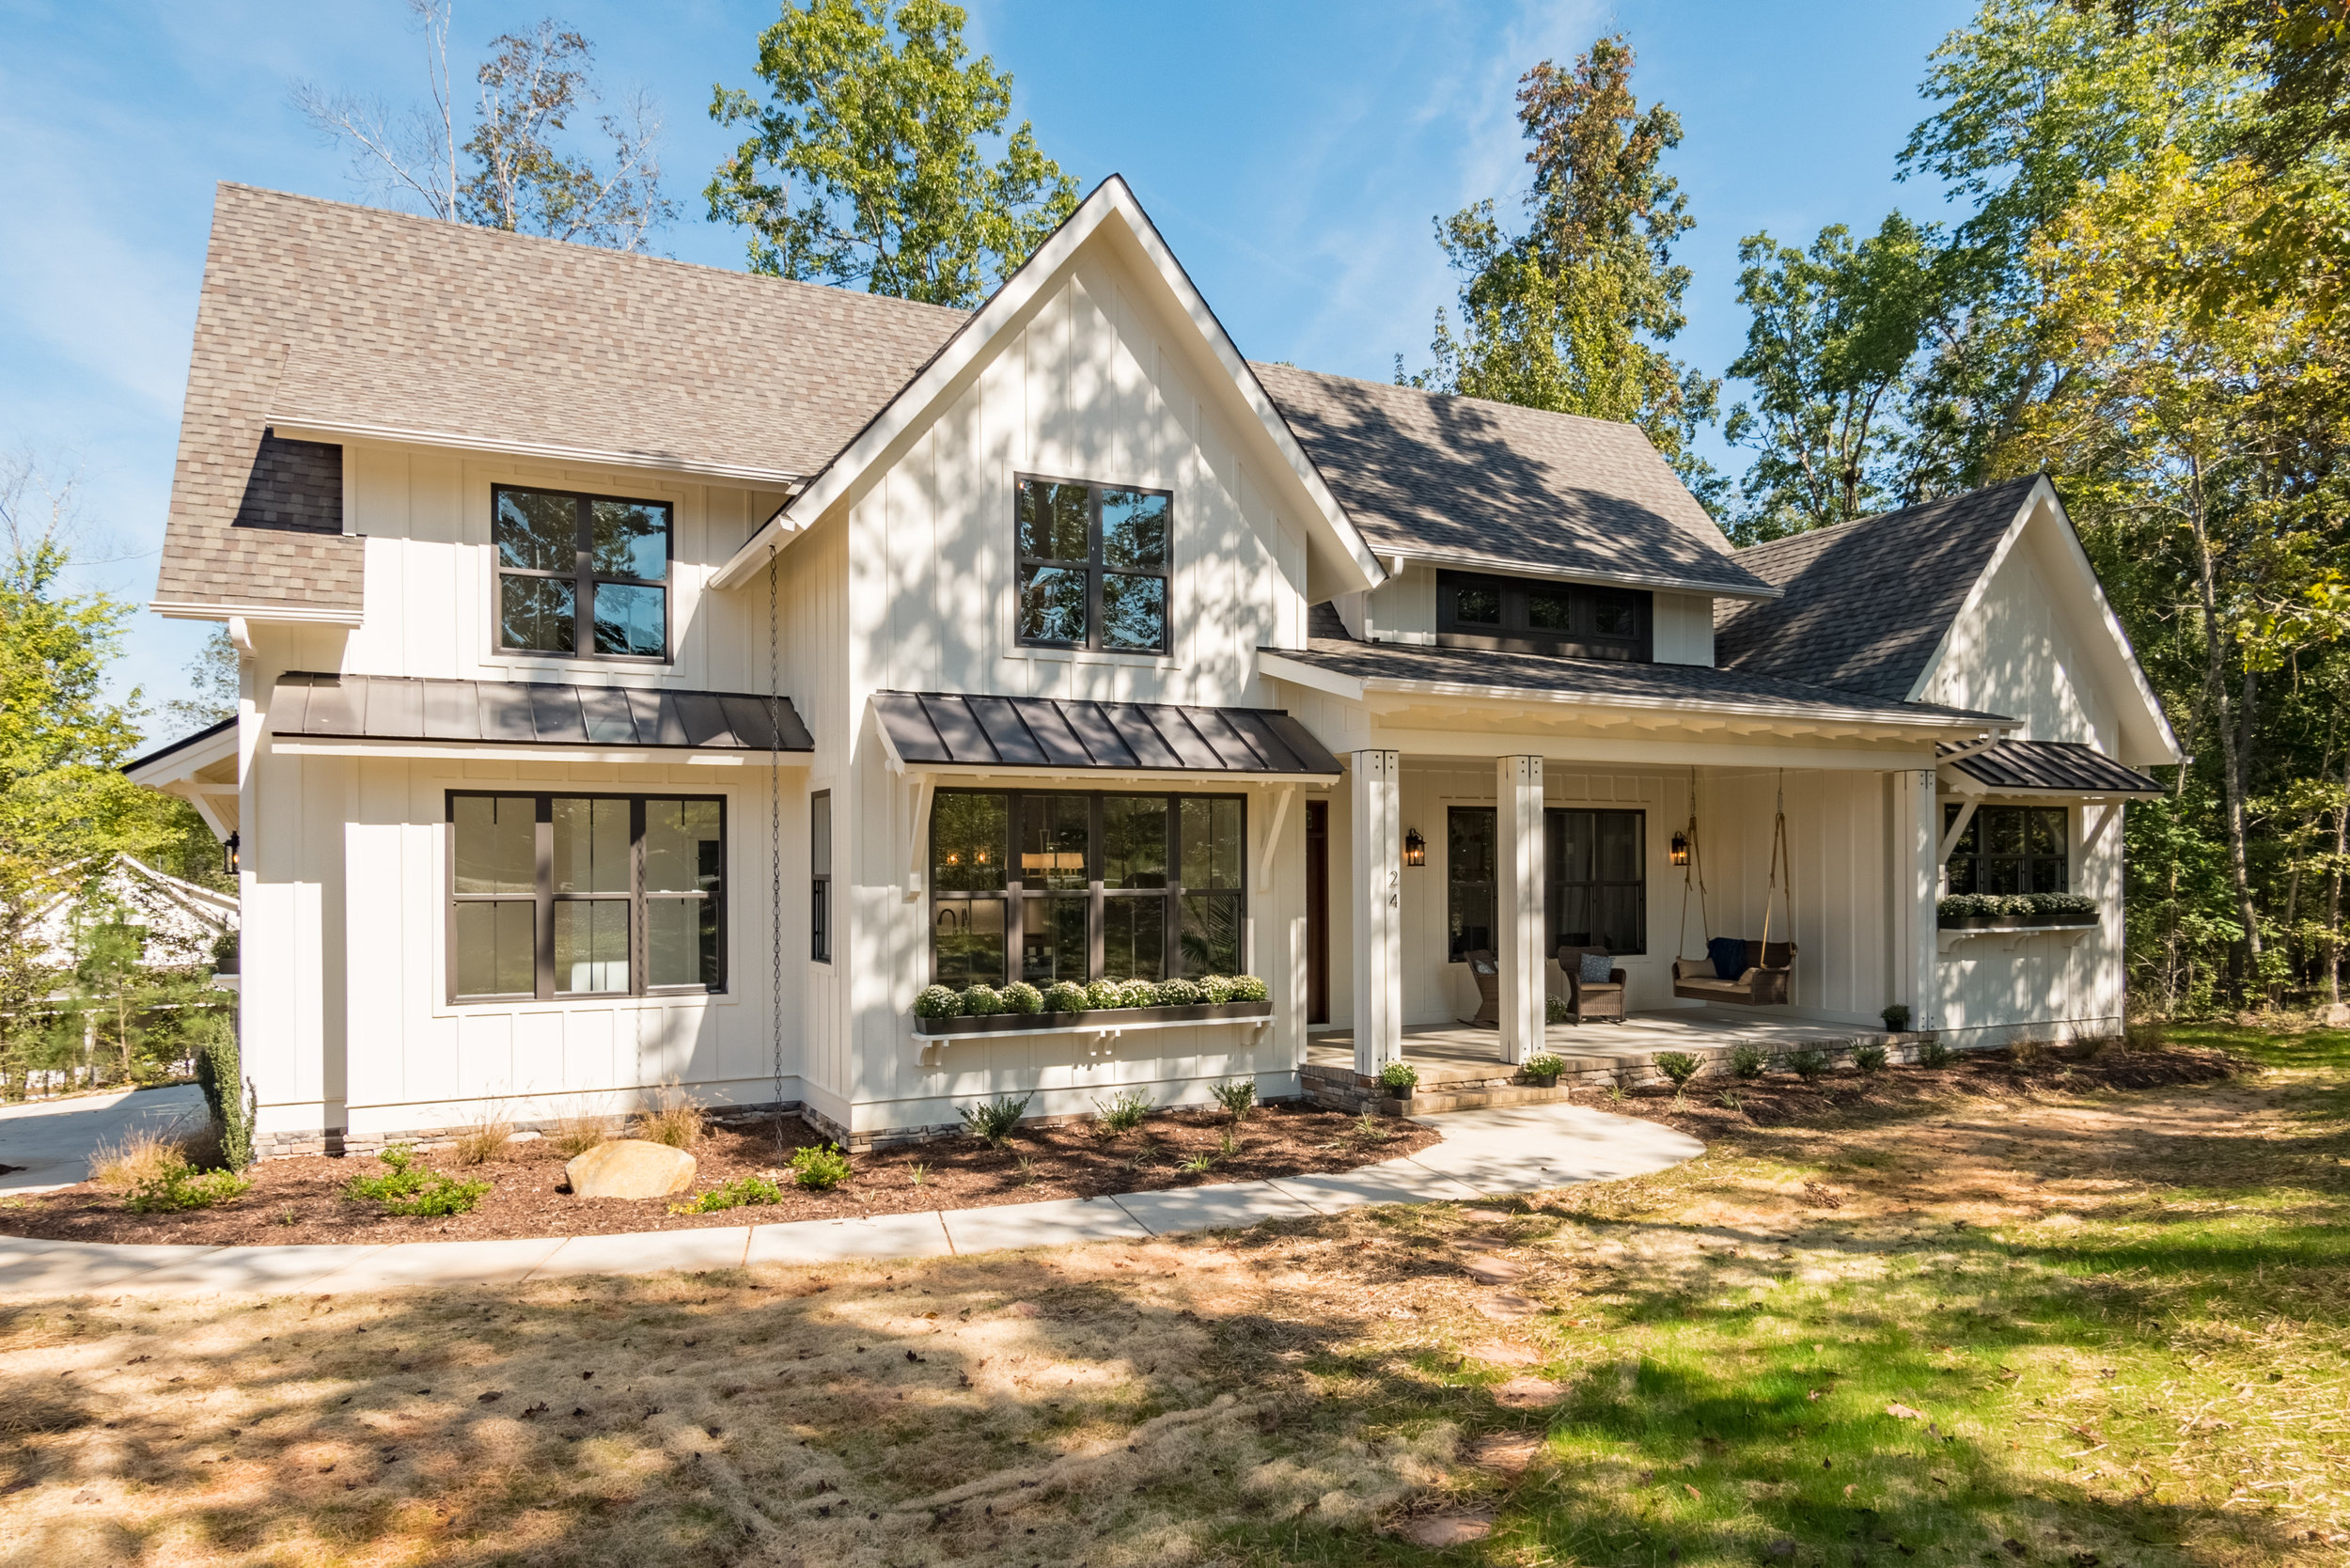 2018 Parade of Homes  (see plan  here )